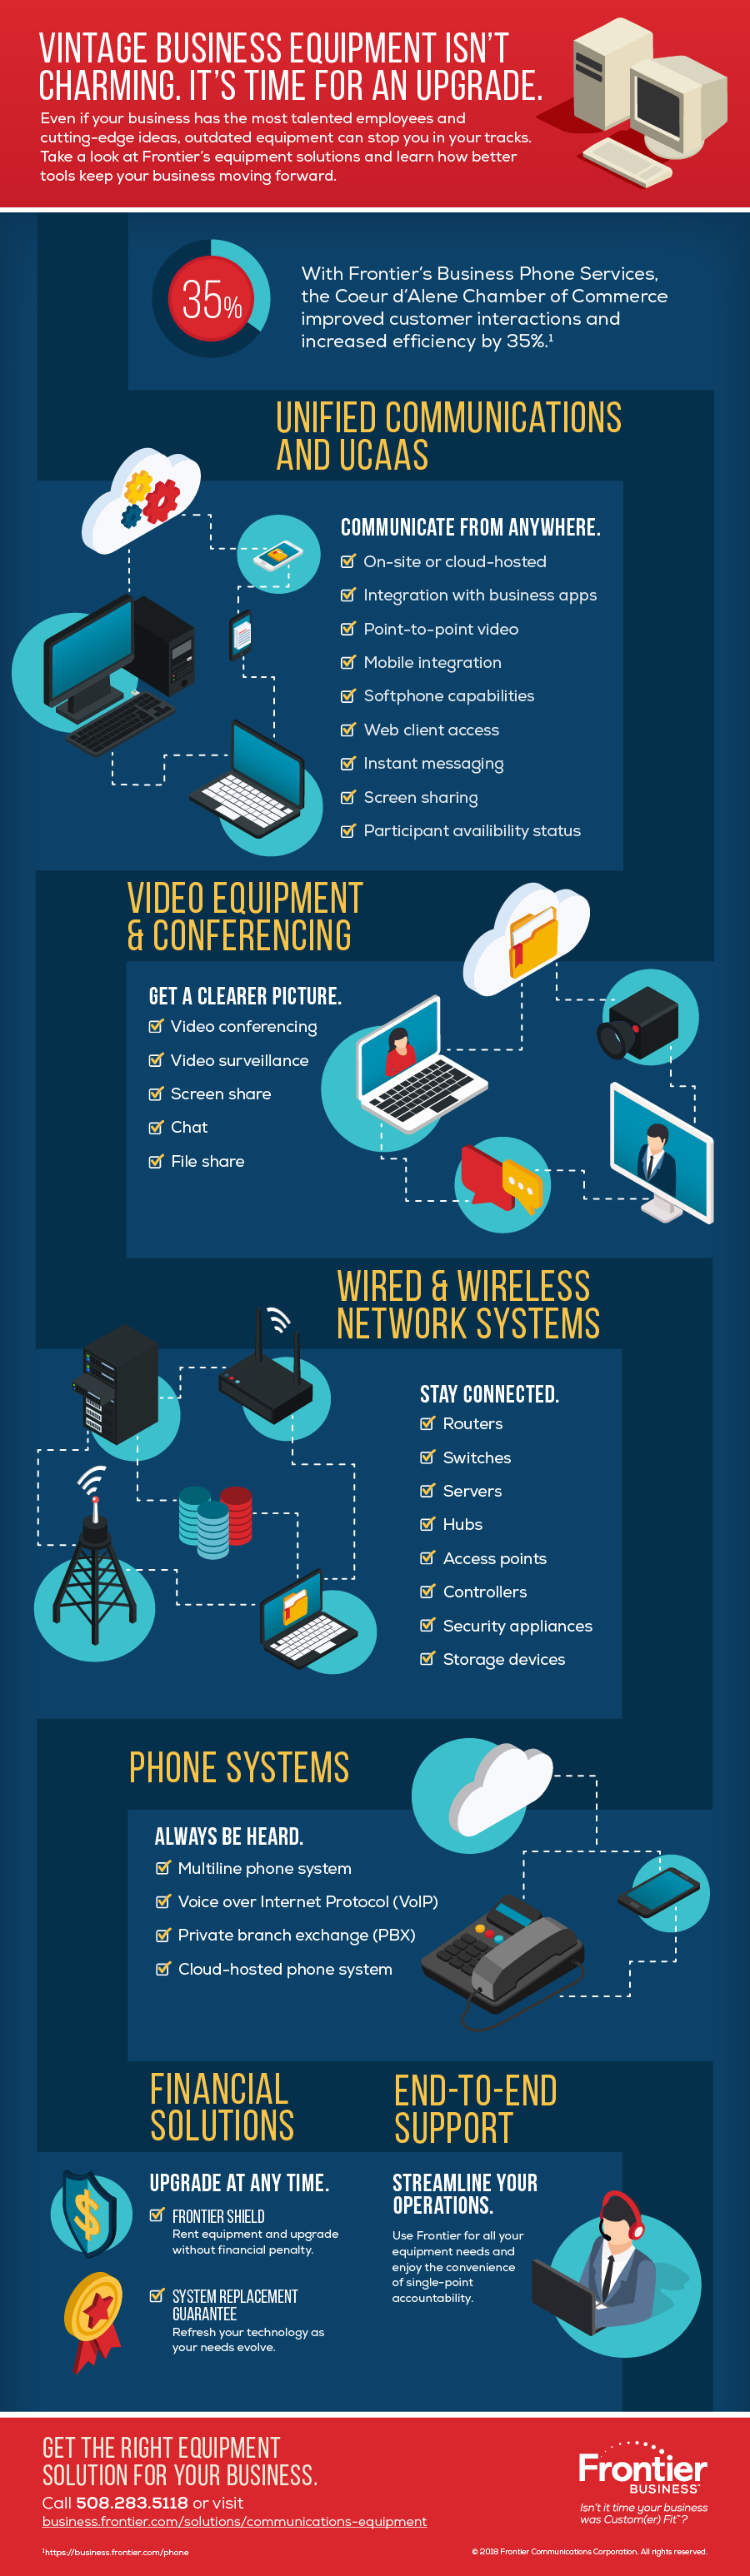 FTC1115_EquipSolutions_Infographic_v3r3.jpg